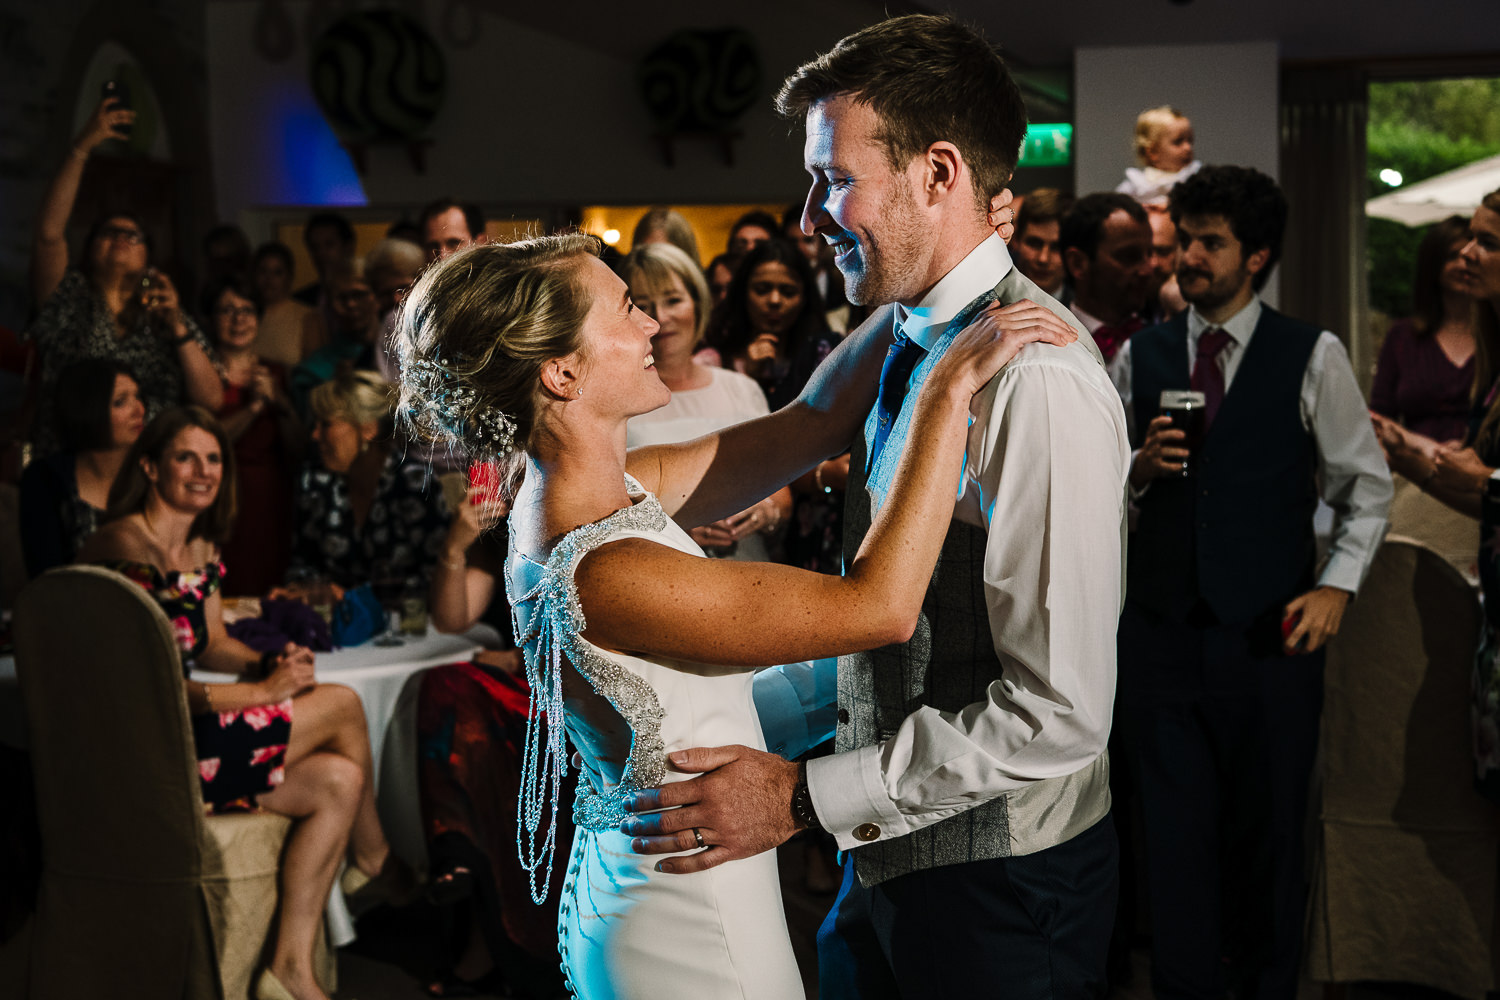 First dance photo of bride and groom